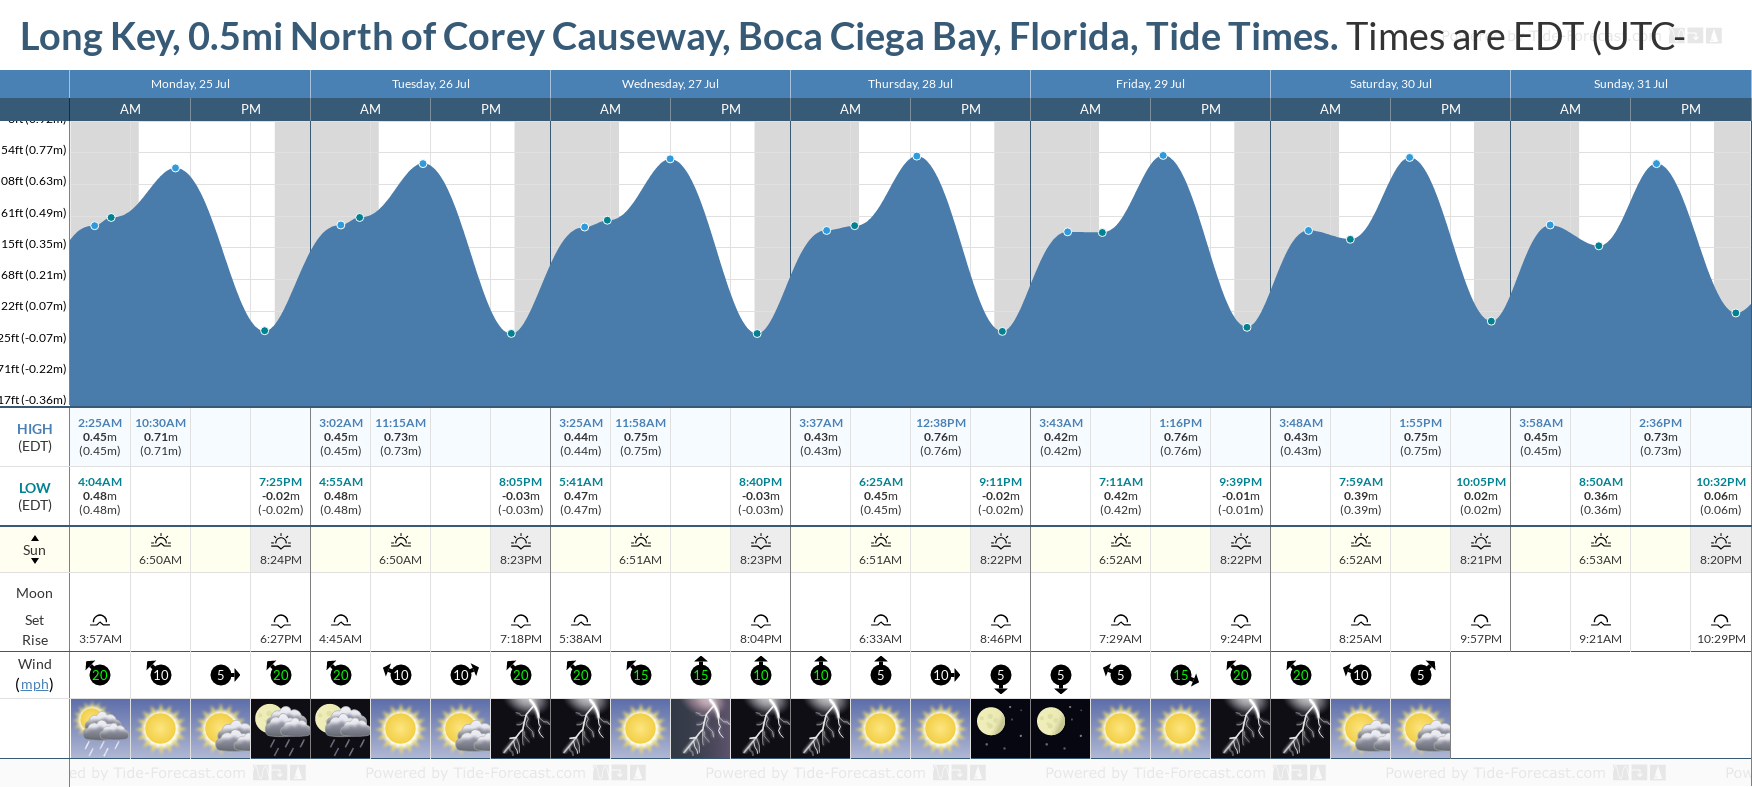 Long Key, 0.5mi North of Corey Causeway, Boca Ciega Bay, Florida Tide Chart including high and low tide tide times for the next 7 days